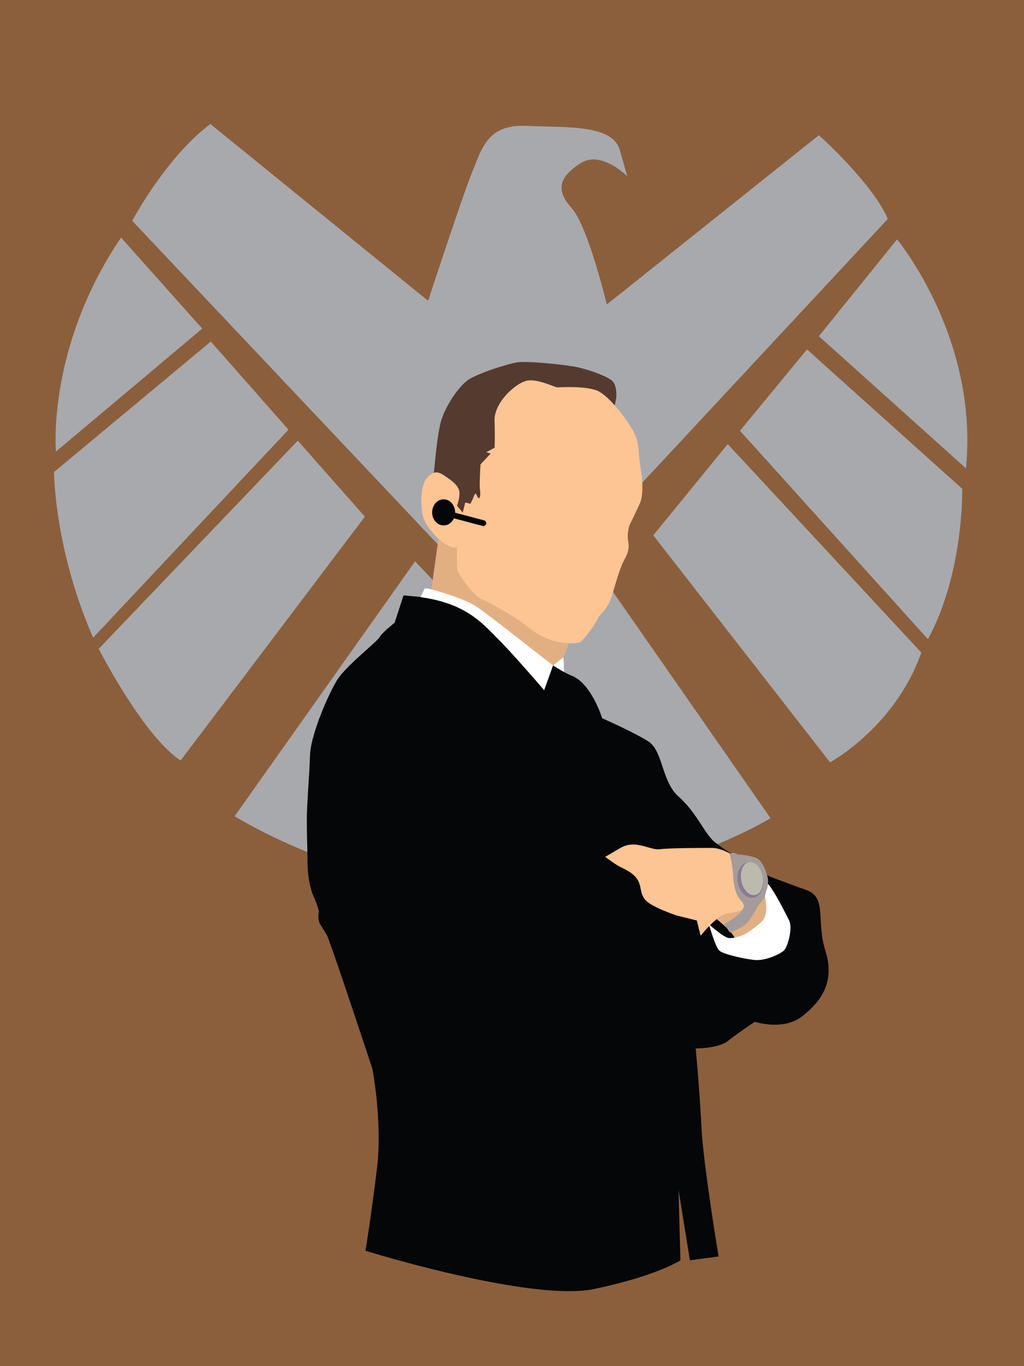 Agent Coulson of SHIELD